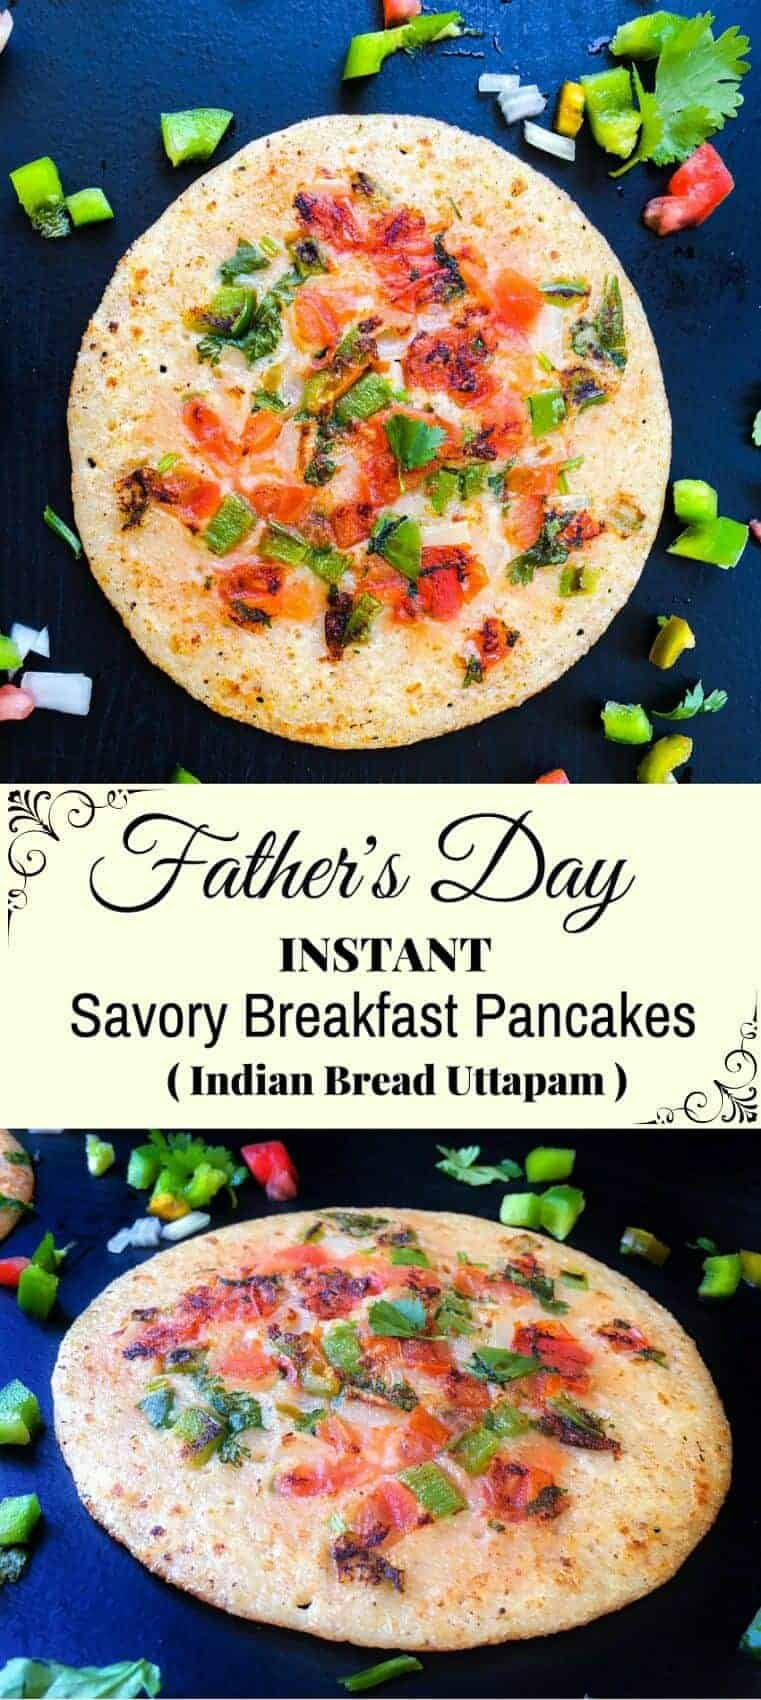 Father's Day-Instant Savory Breakfast Pancakes (Indian Bread Uttapam) : #breakfast #recipes #fathersday #uttapam